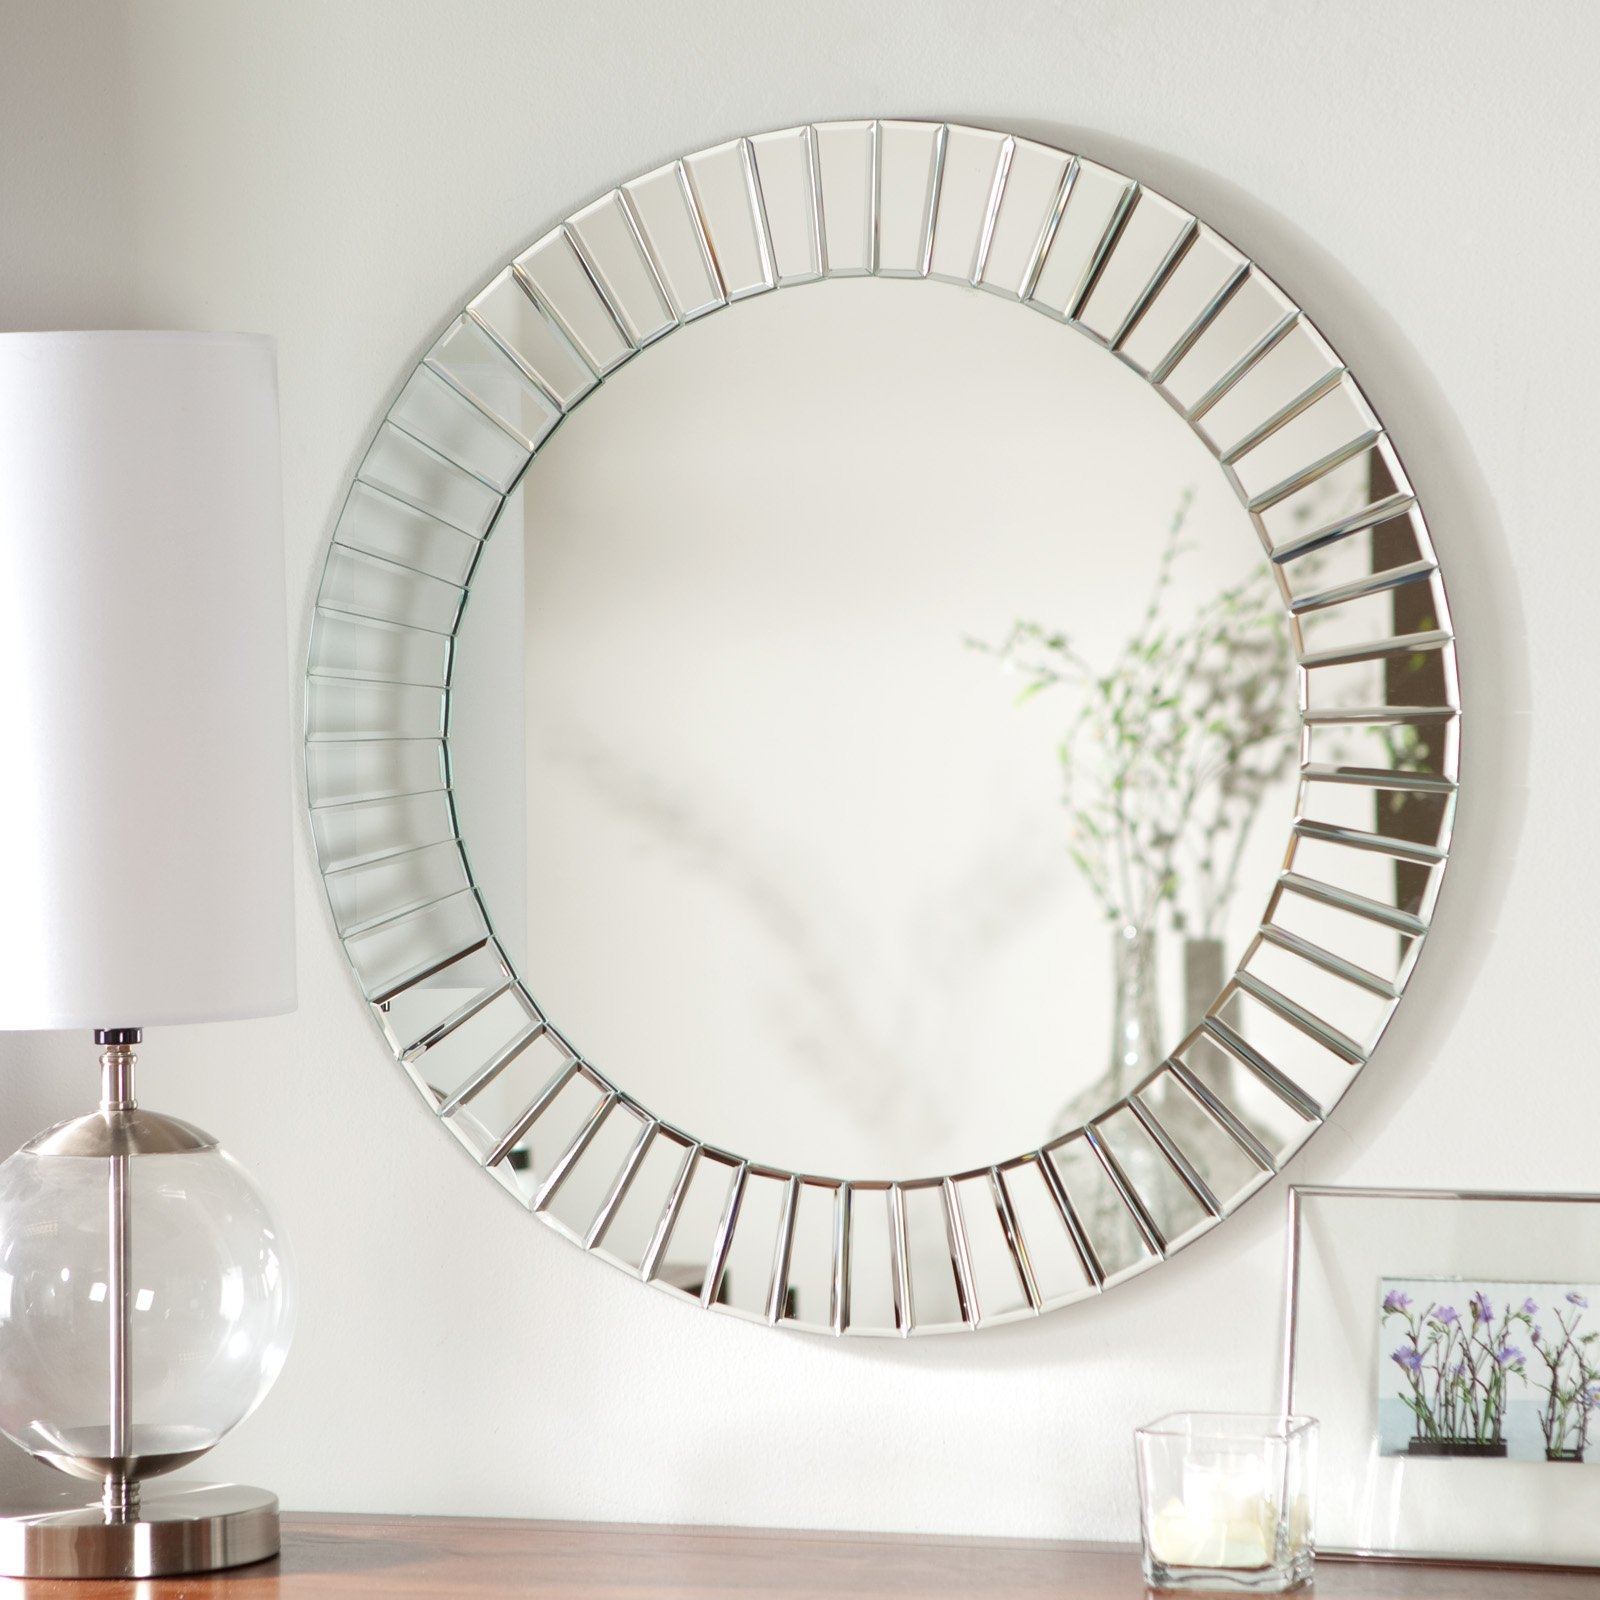 The Rich Frameless Mirrors Board Room Refresh Pertaining To Round Mirrors For Sale (View 3 of 15)